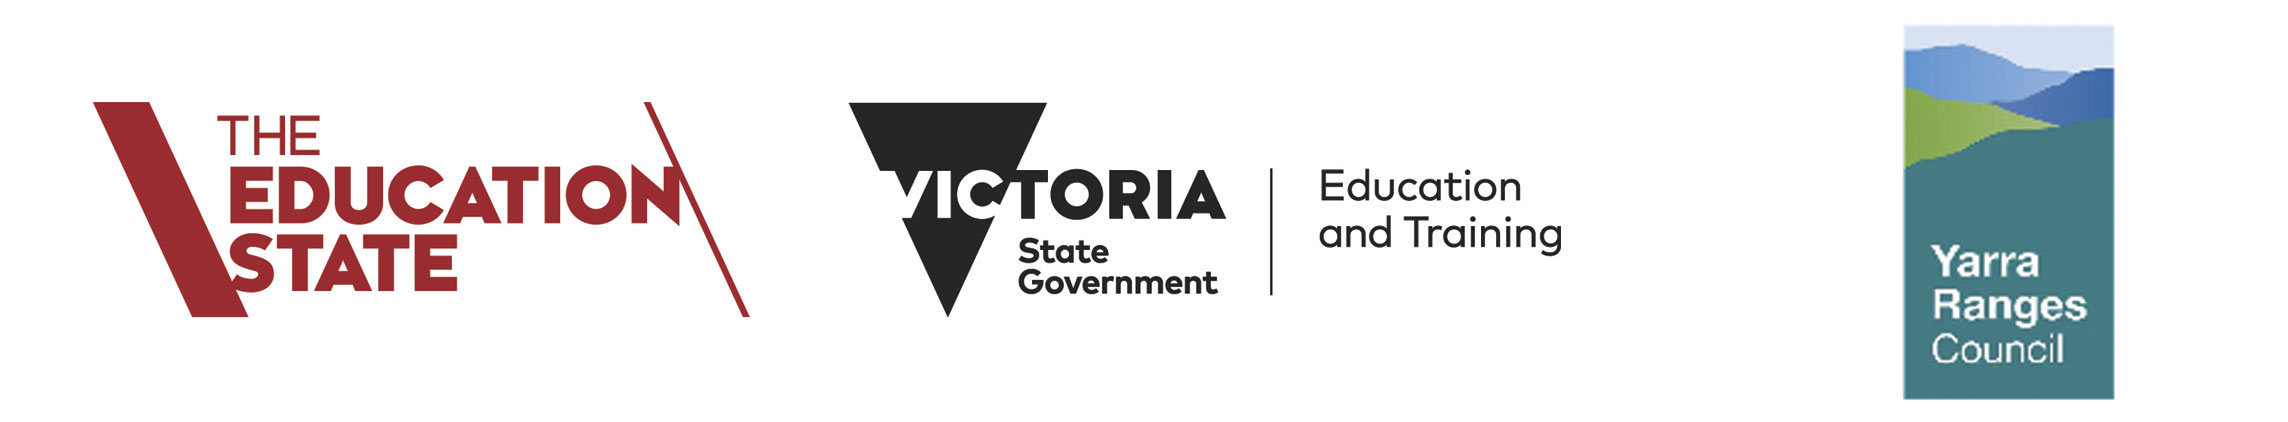 Education-State-and-Vic-Govt-Logo-Yarra-Ranges-council